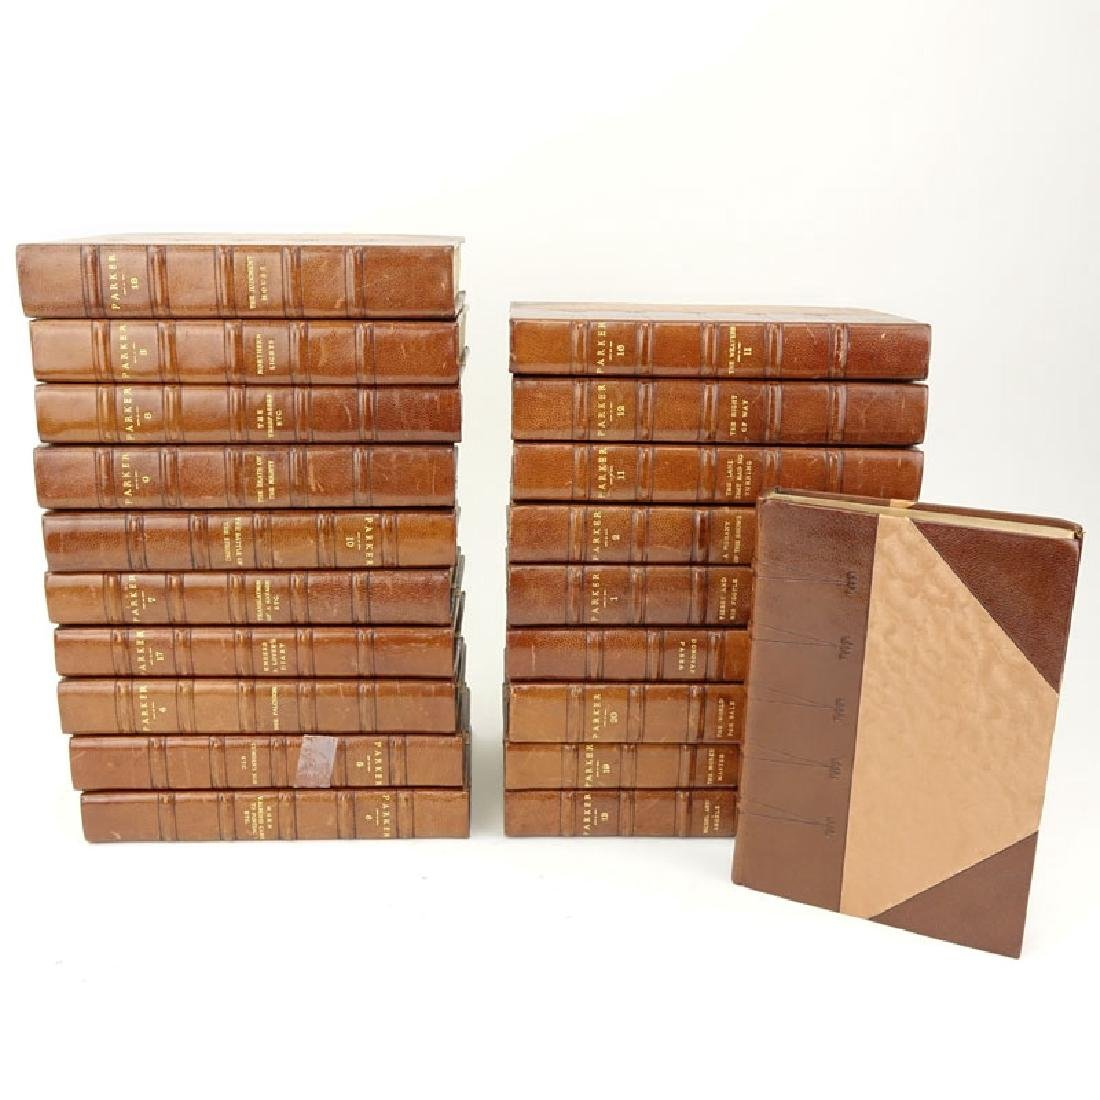 Gilbert Parker Imperial Edition Leatherbound Books